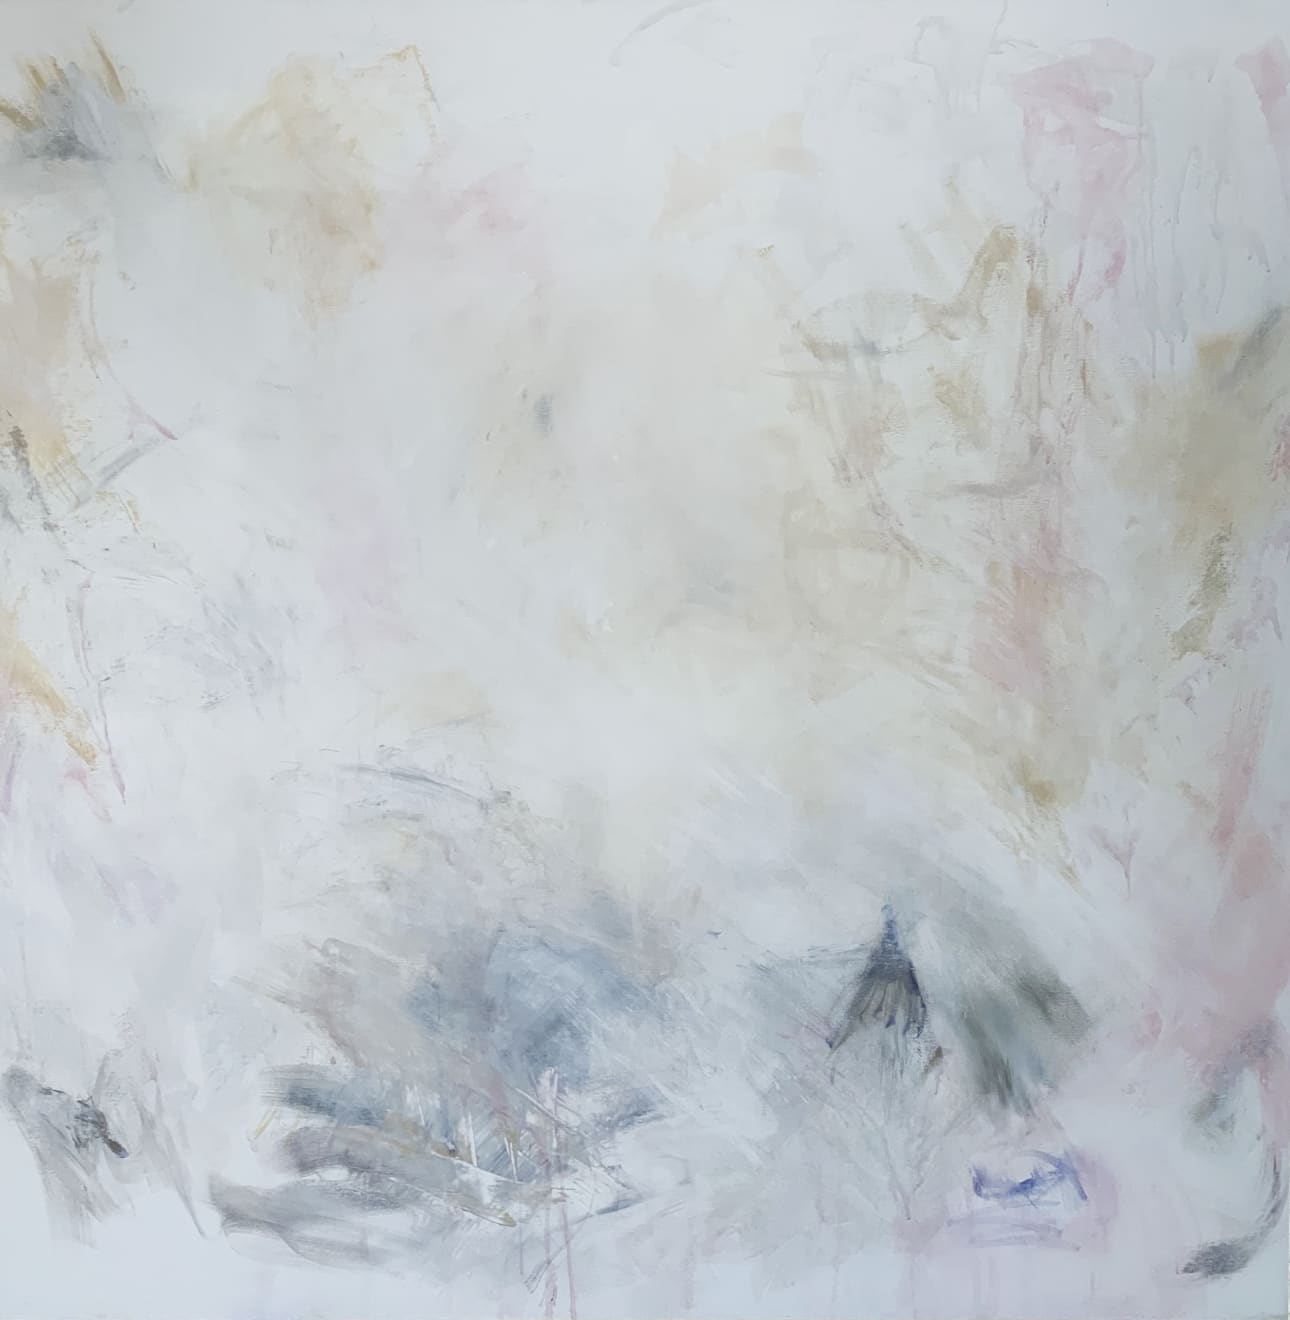 Patricia Qualls, A Gentle Breath, 2019